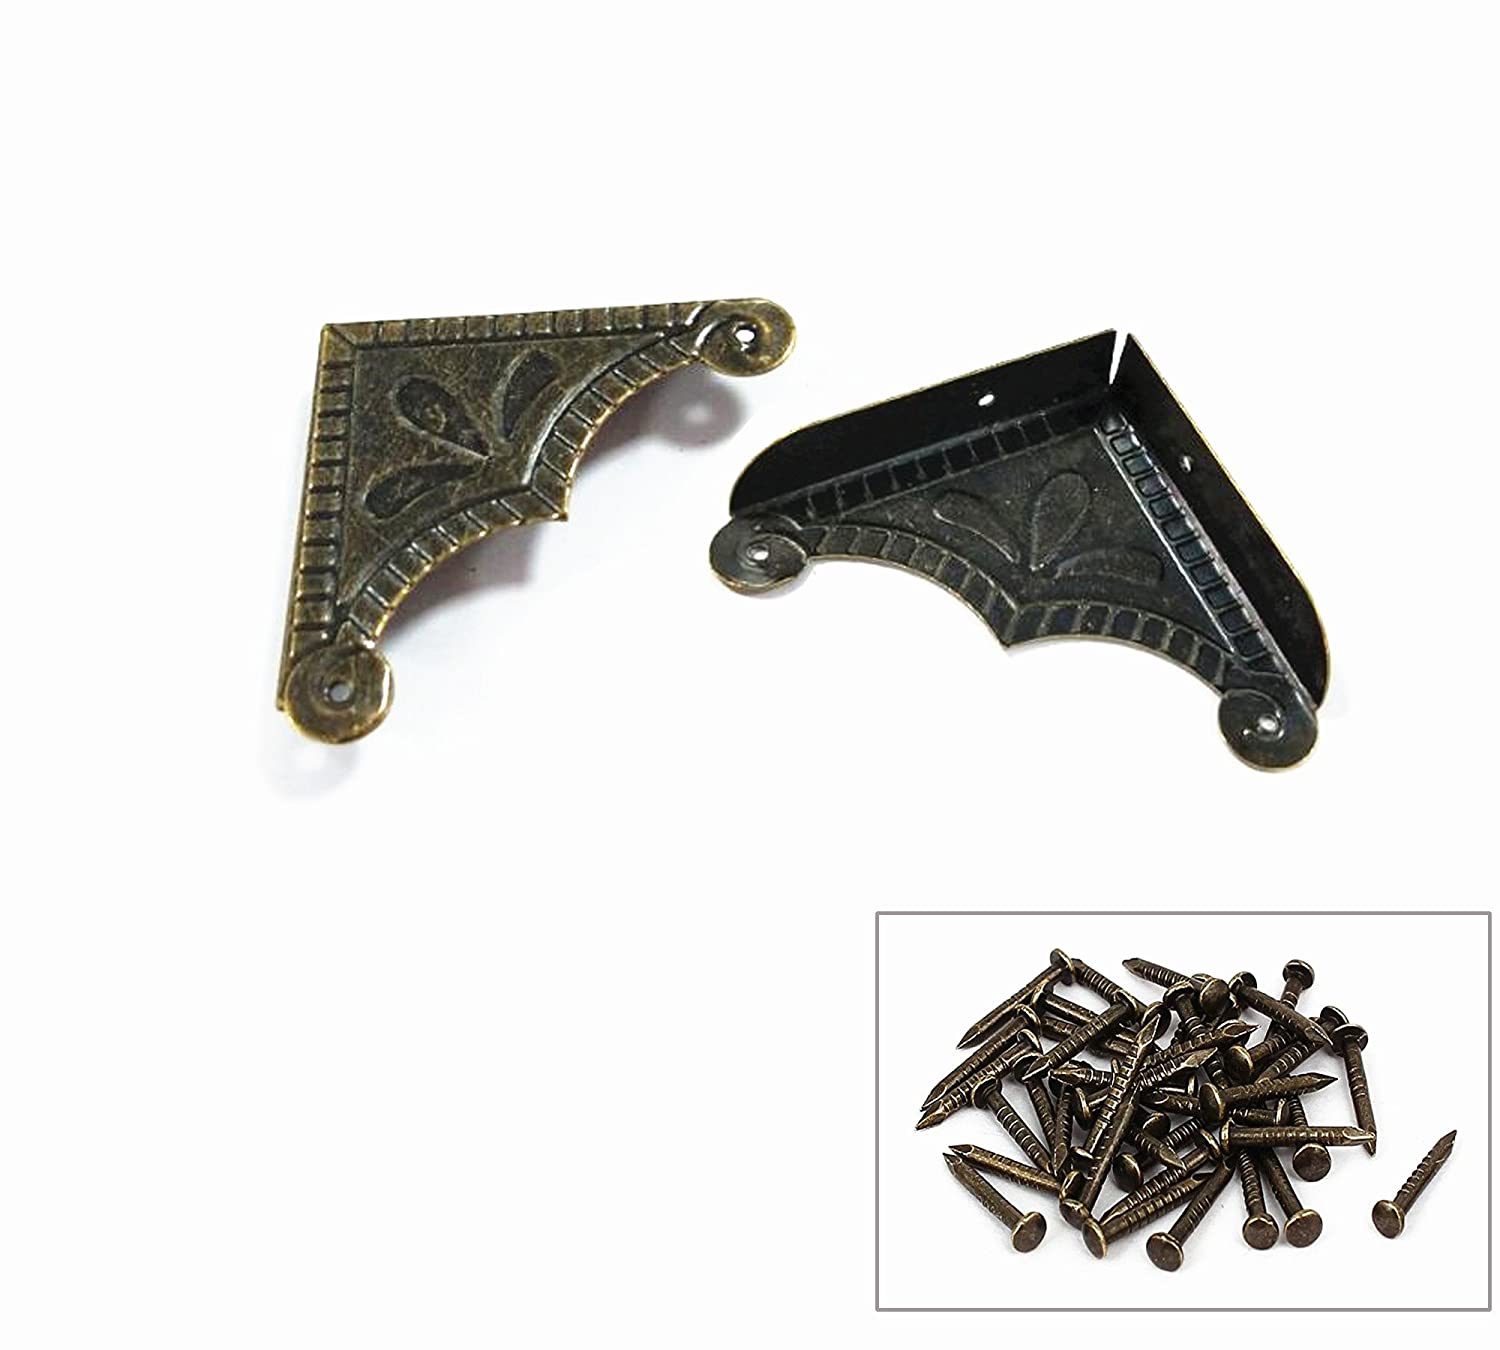 LTD Antrader 30pcs Box Corner Protector Metal Screw Fixed Desk Corner Safety Edge Guard Bronze Tone 1.9 x 1.9 Guangzhou Openfind Electronic Commerce CO